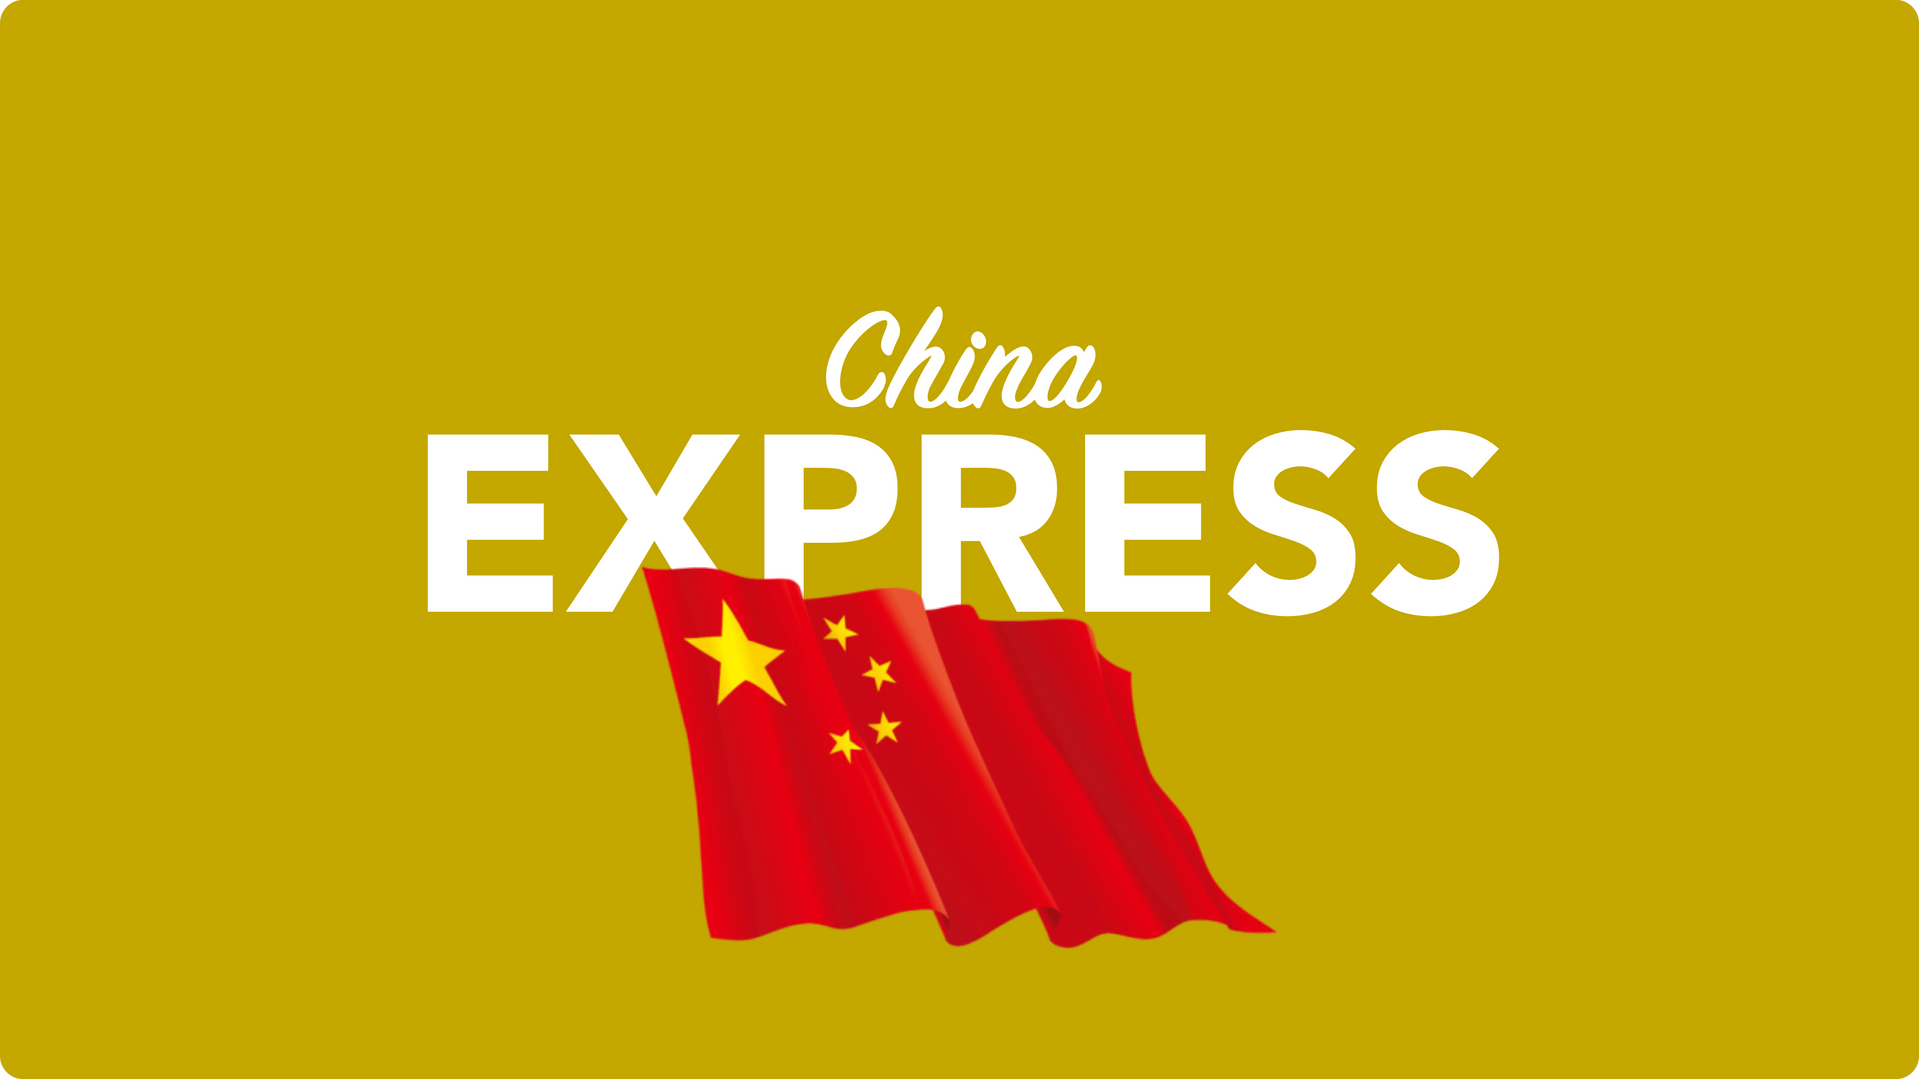 China Express 4xpress.com